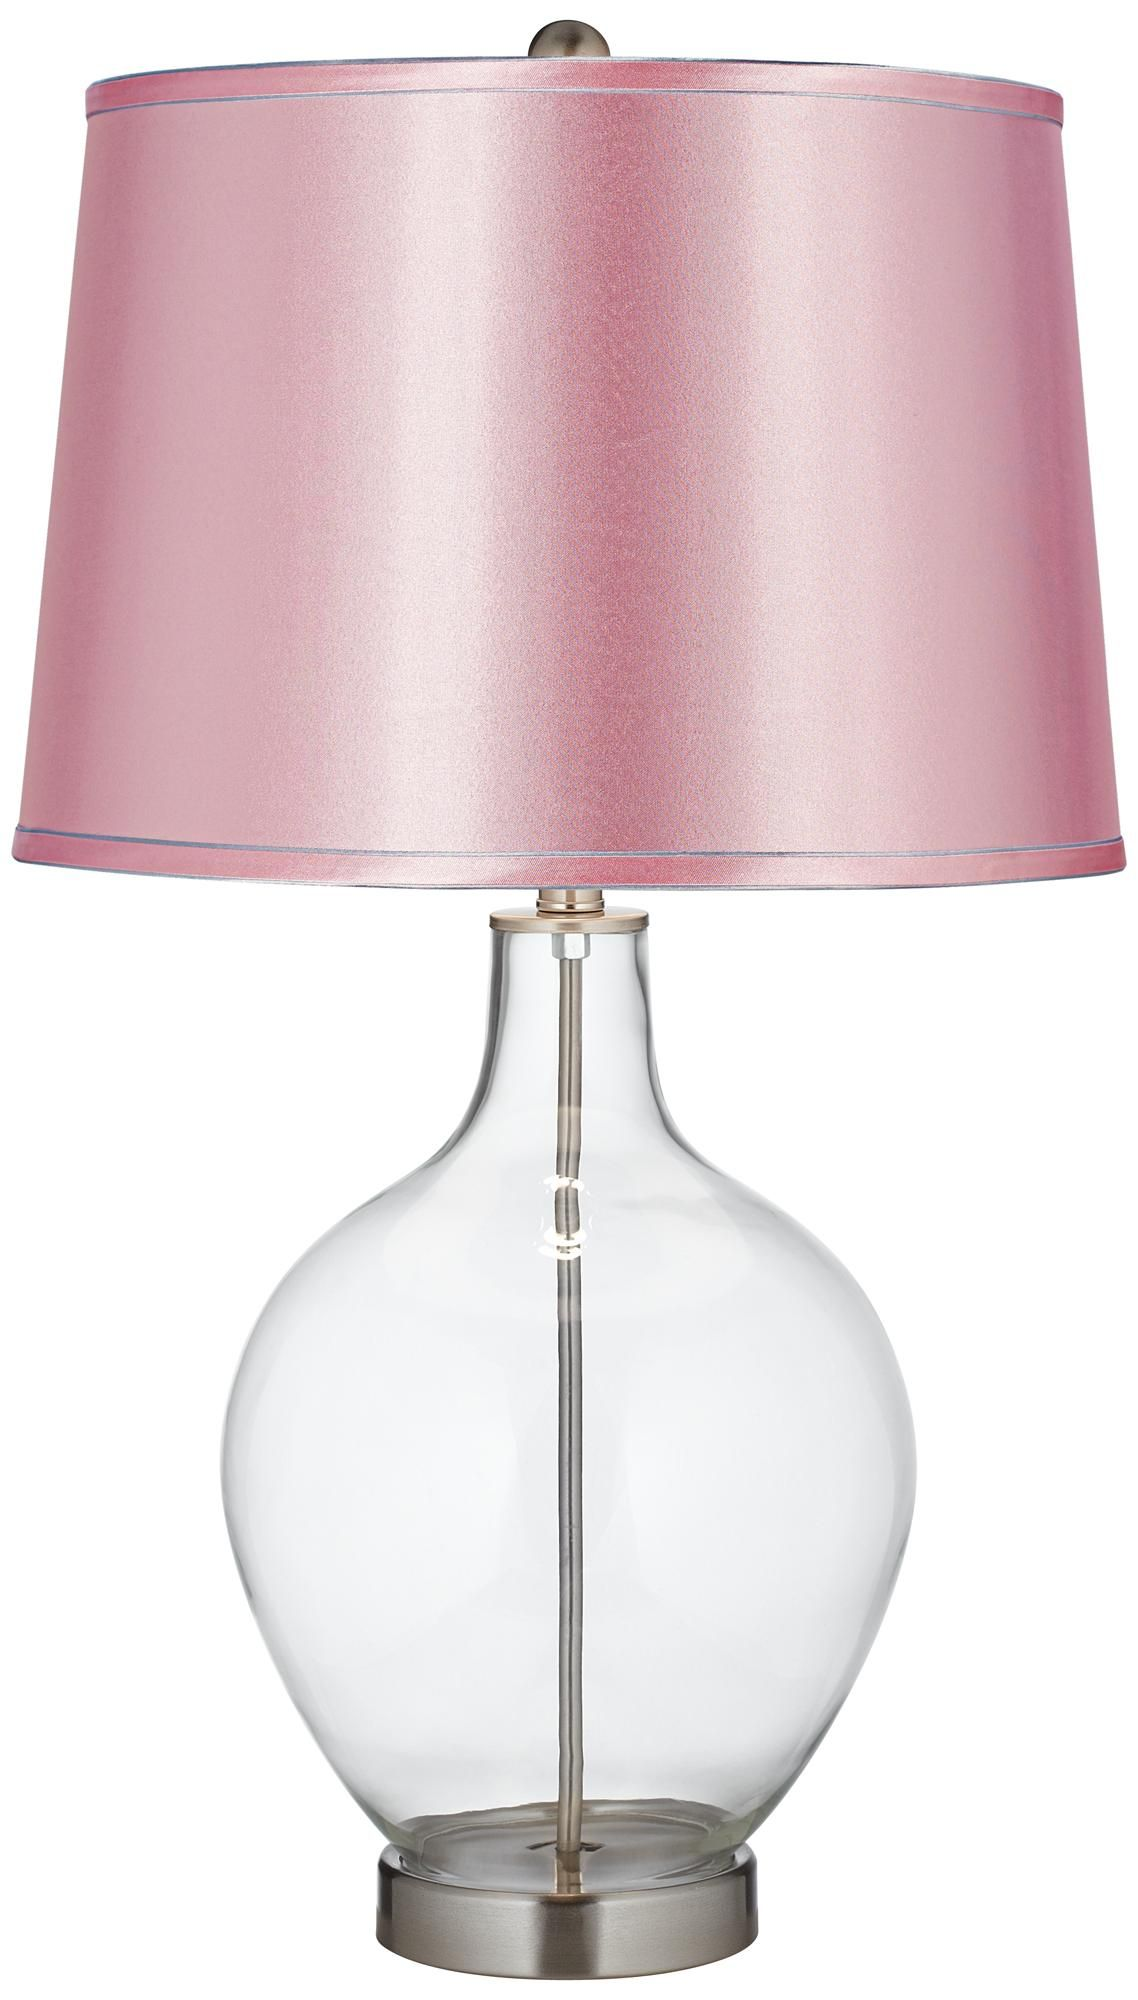 Clear fillable toby table lamp style 1n362 1c119 1p587 drum clear fillable toby table lamp style 1n362 1c119 1p587 geotapseo Image collections